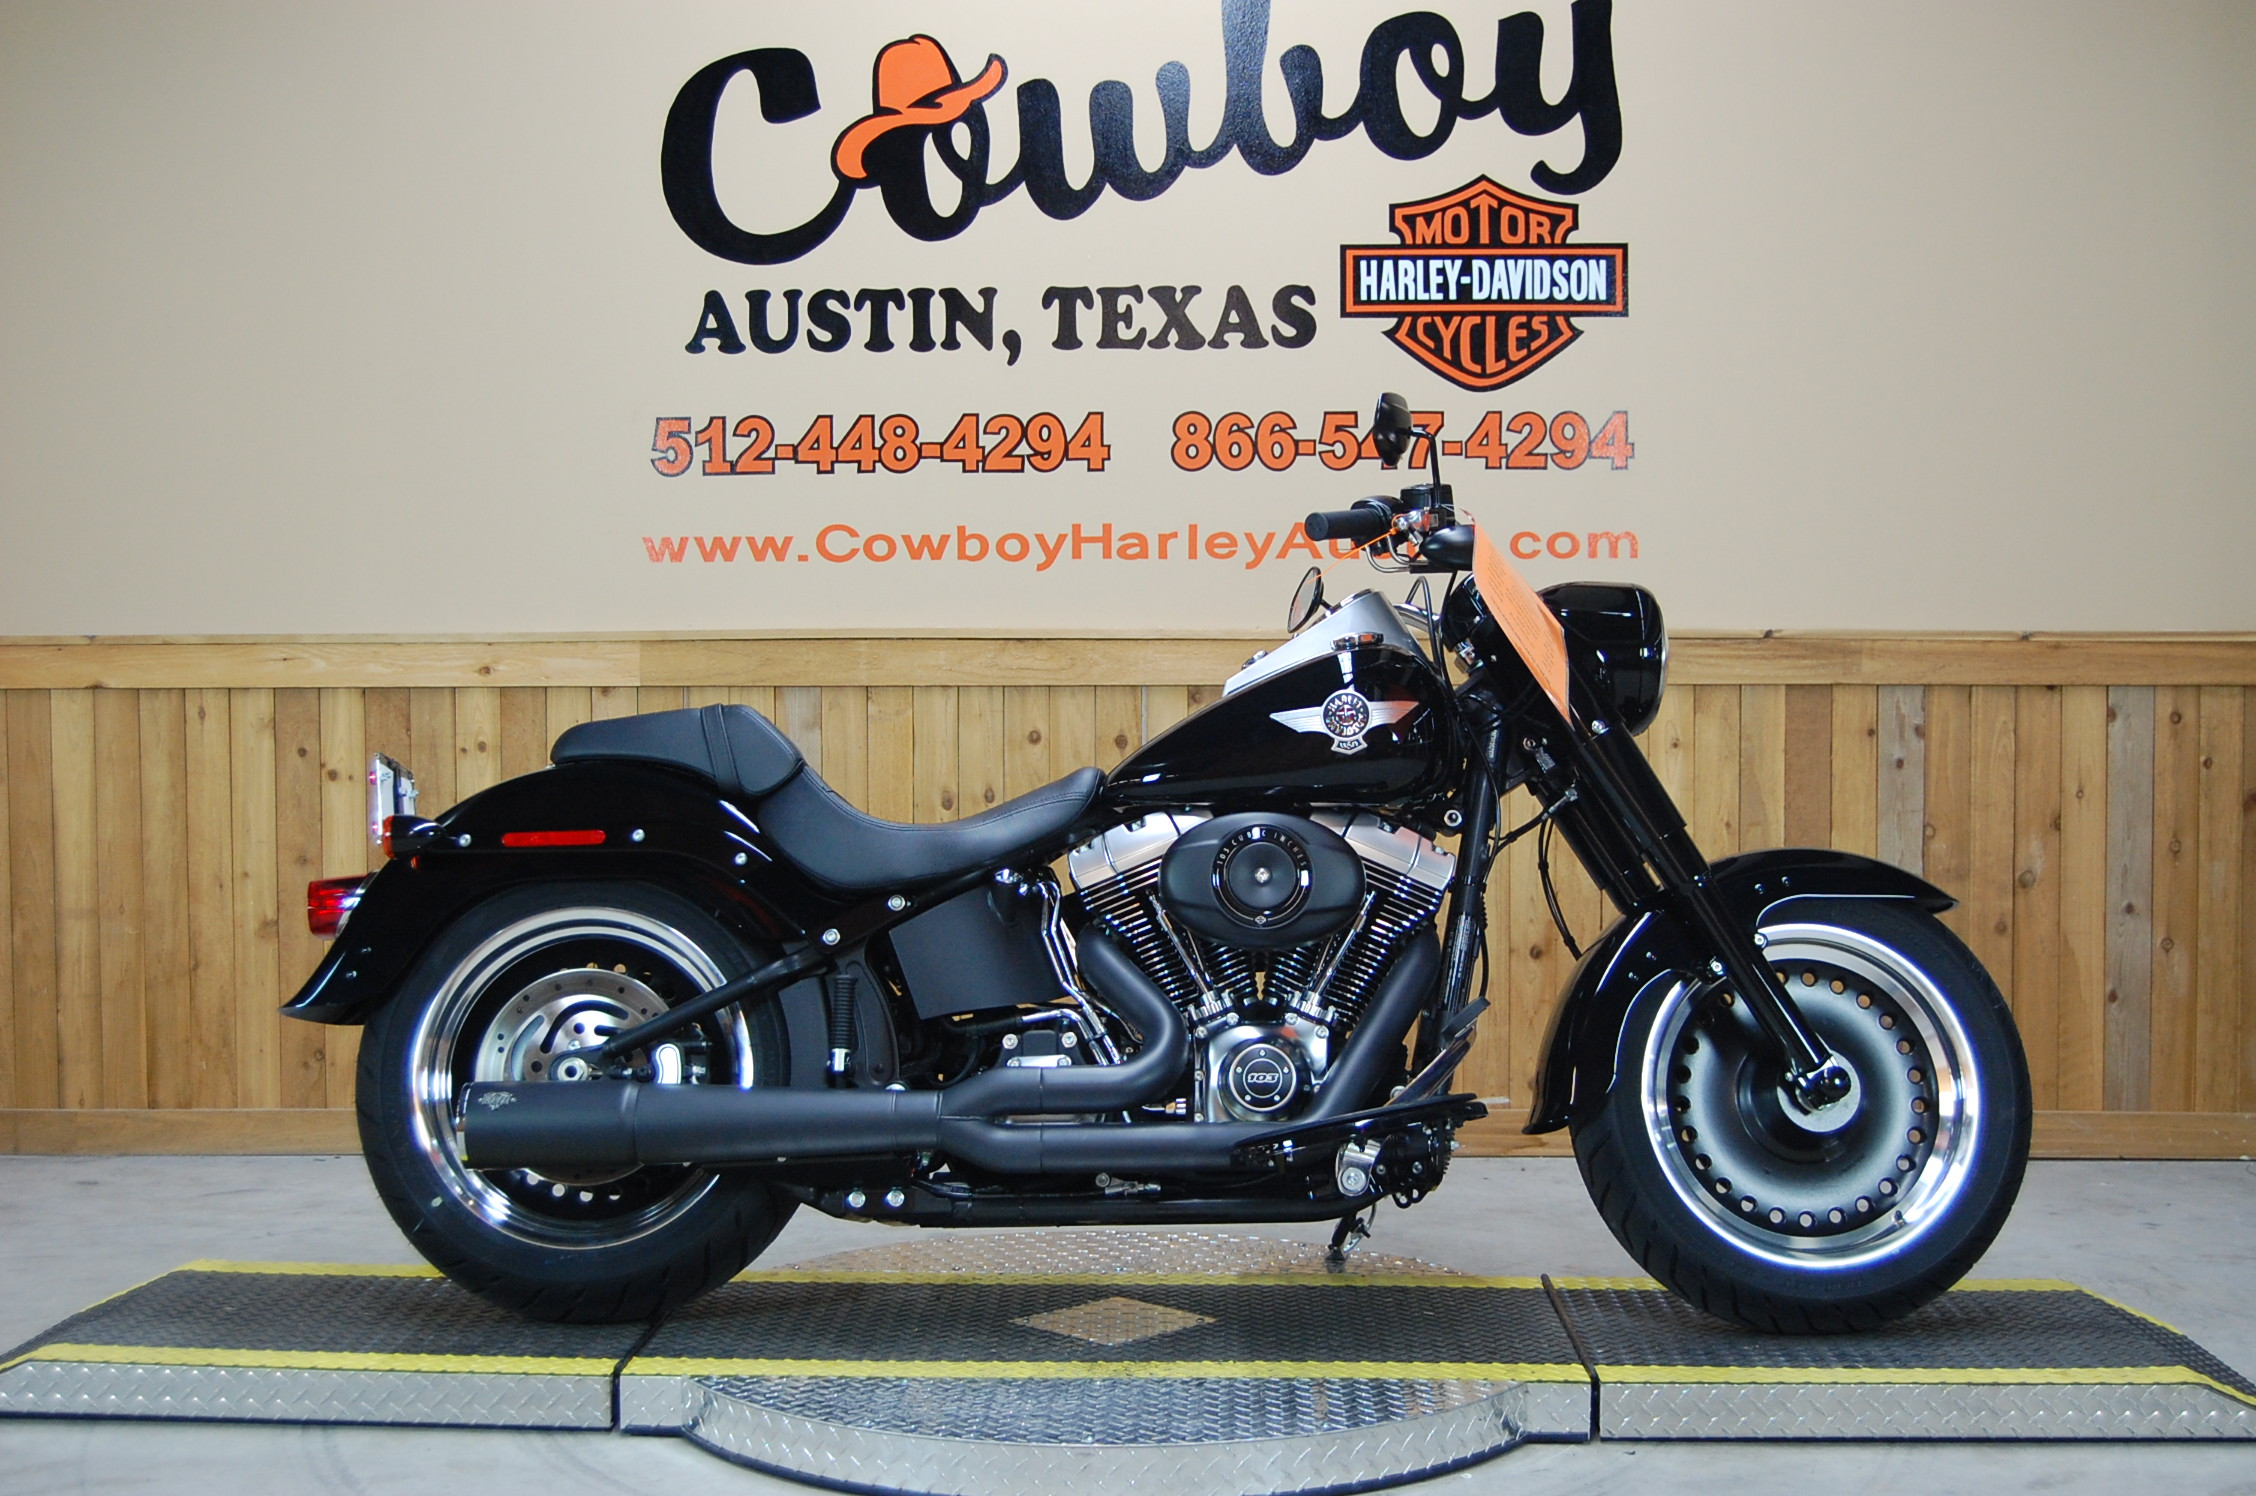 2014 Harley-Davidson Softail Fat Boy Lo #3